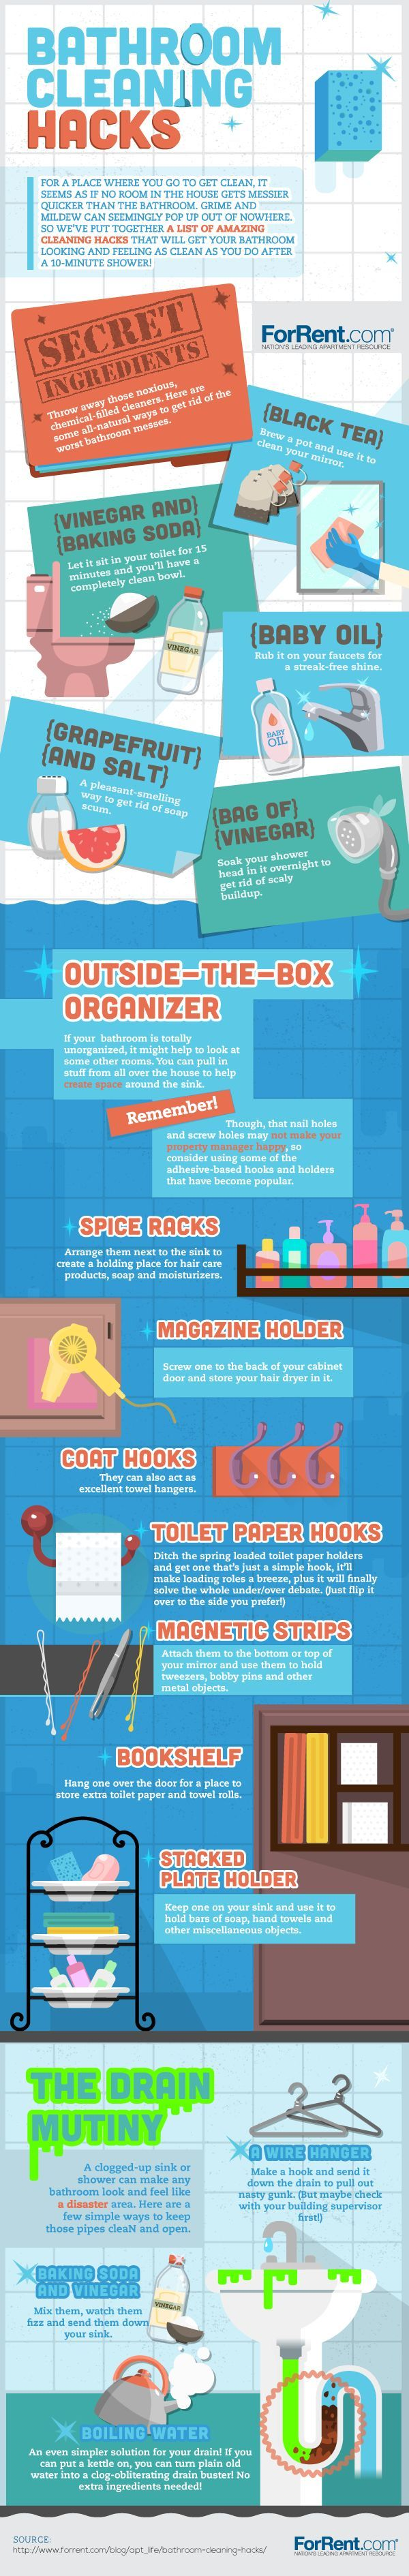 Bathroom cleaning hacks to help you make your bathroom squeaky clean!